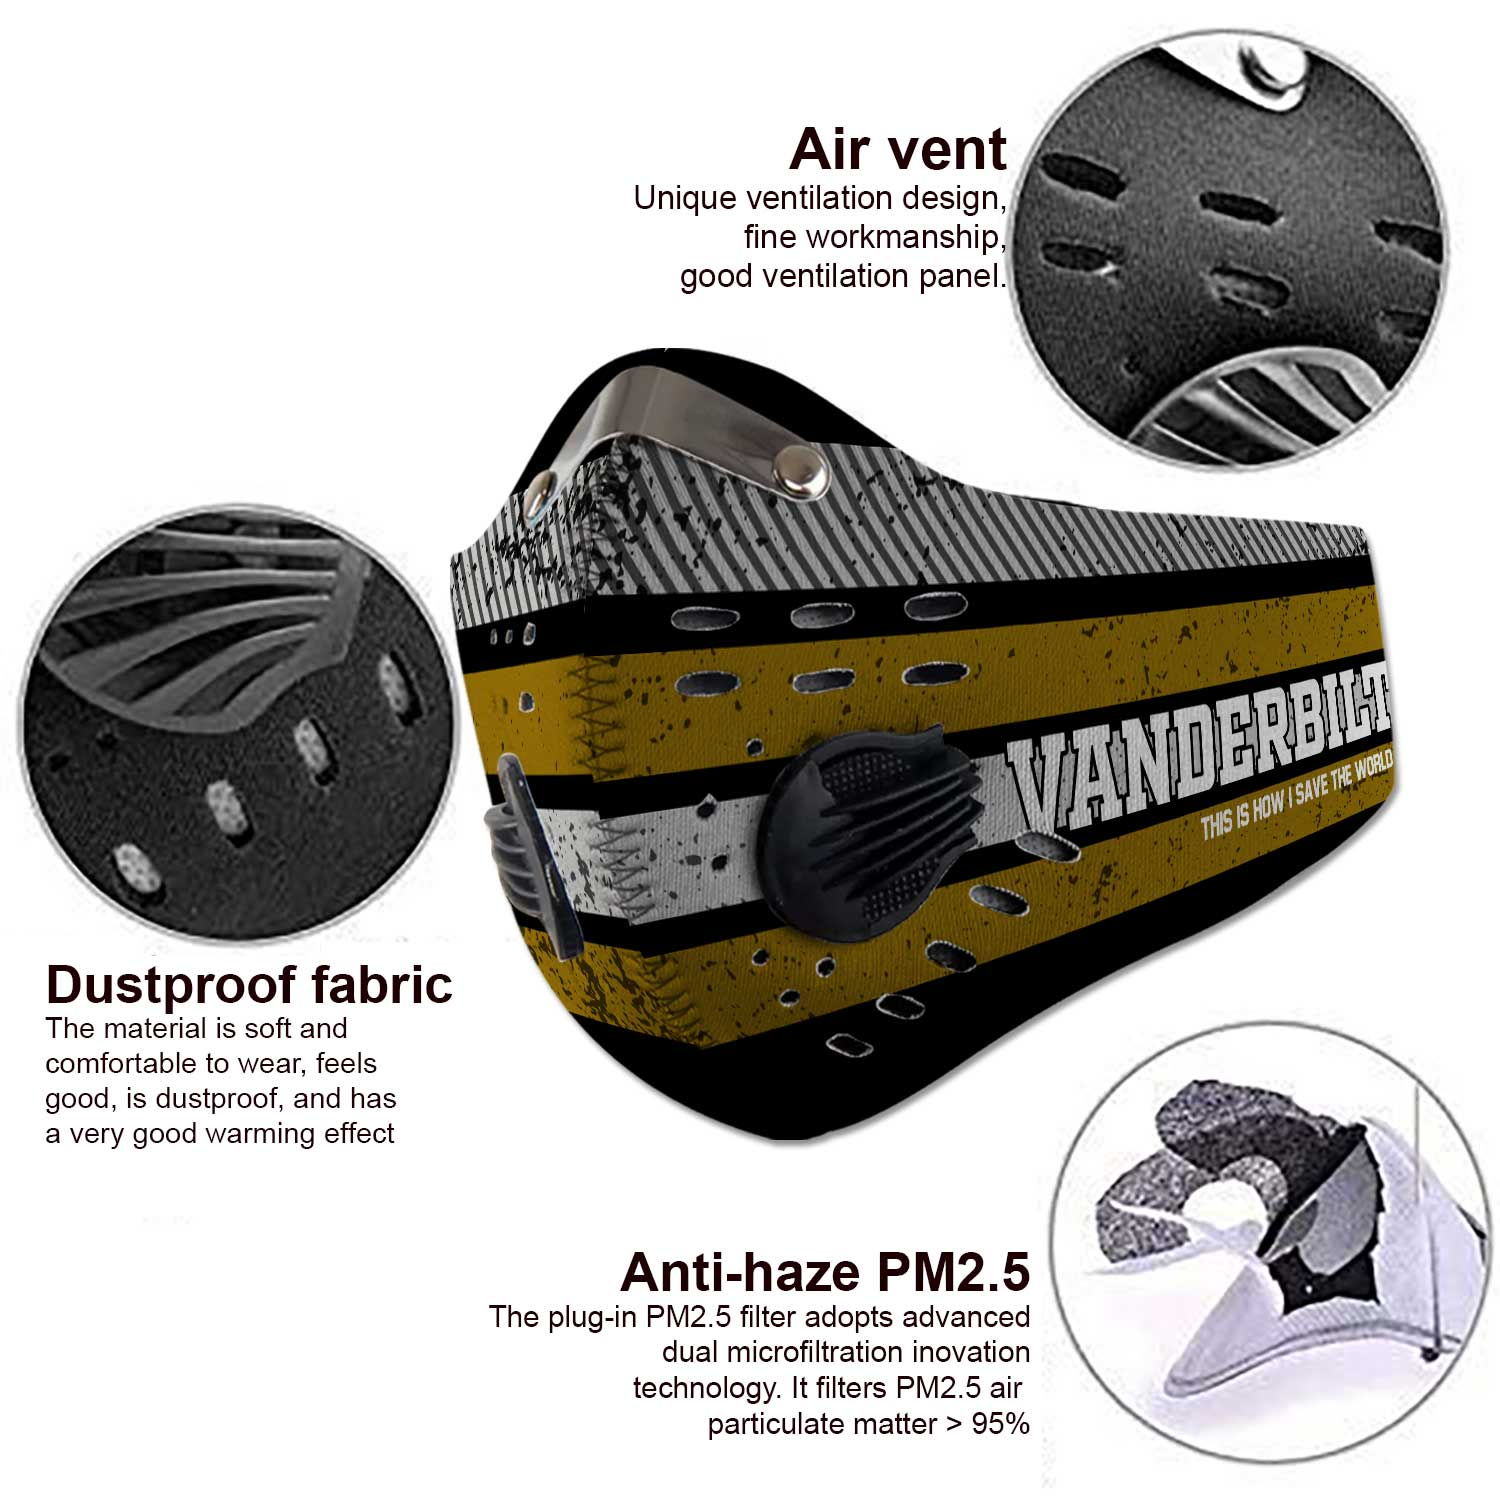 Vanderbilt commodores this is how i save the world carbon filter face mask 3